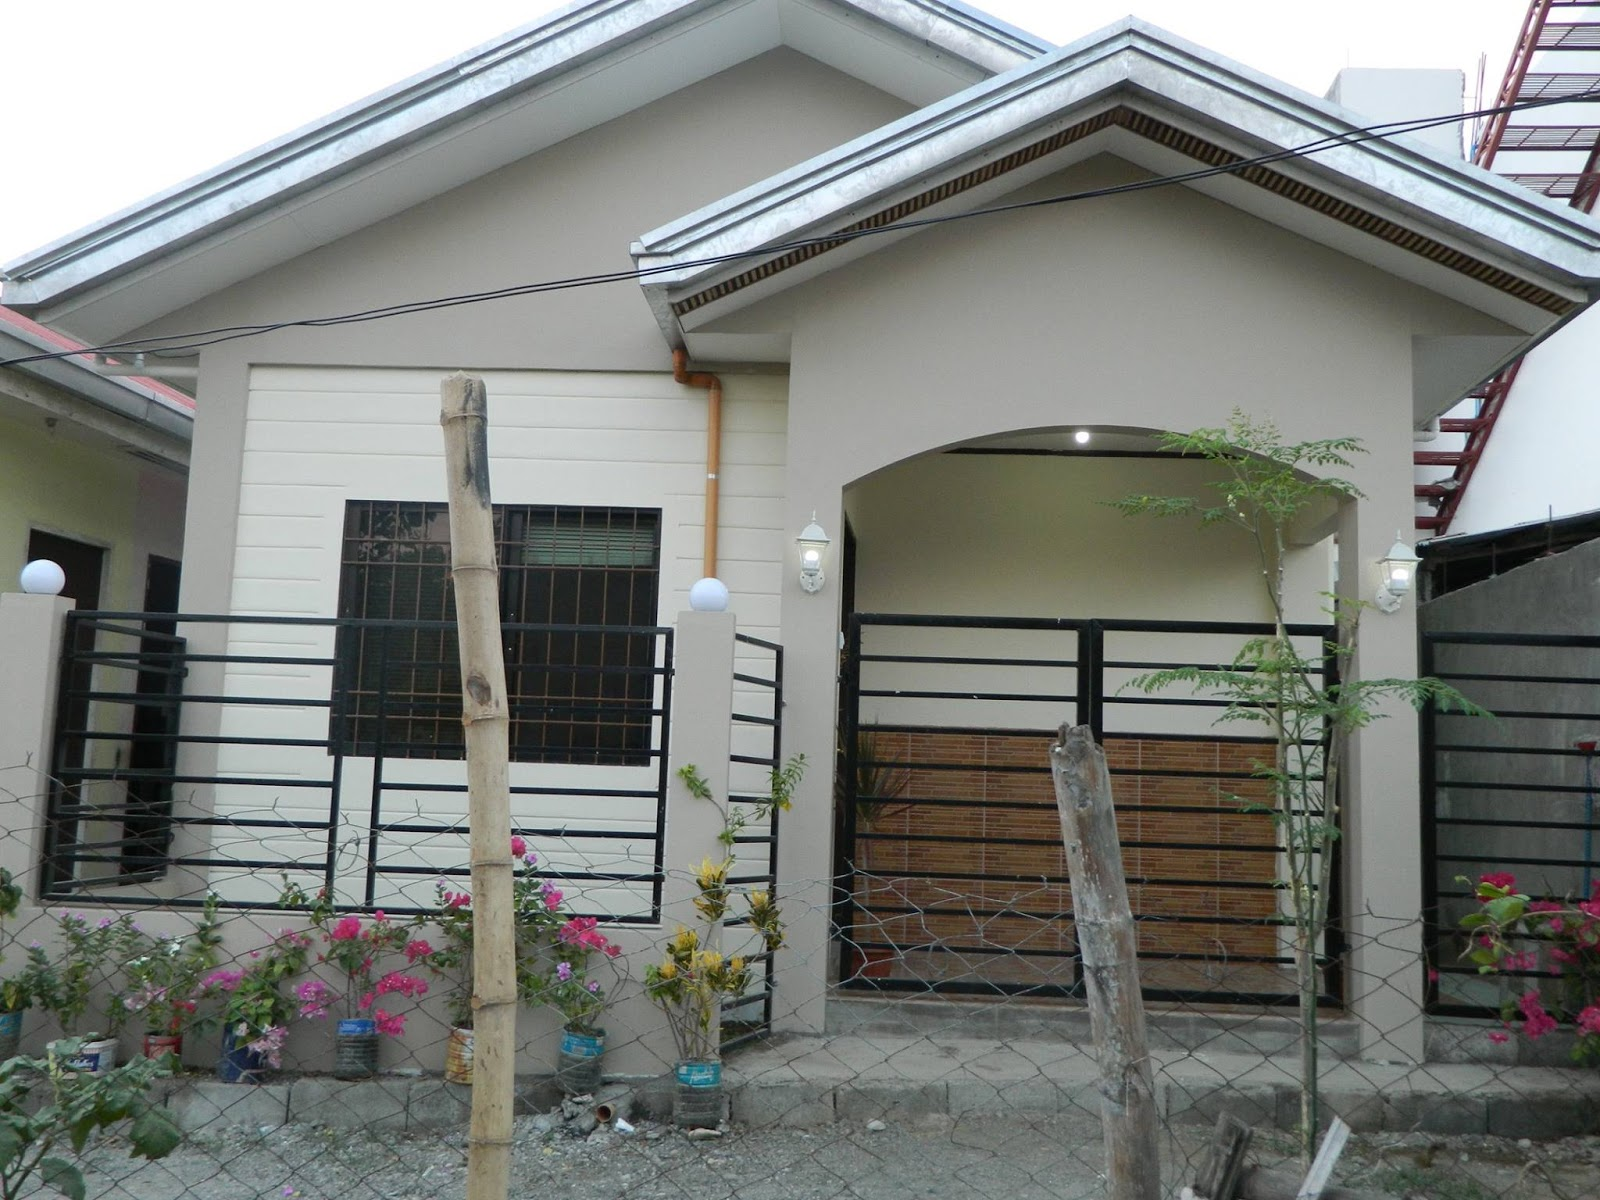 Space saving house plans house worth p400k material cost for 300 sqm house design philippines